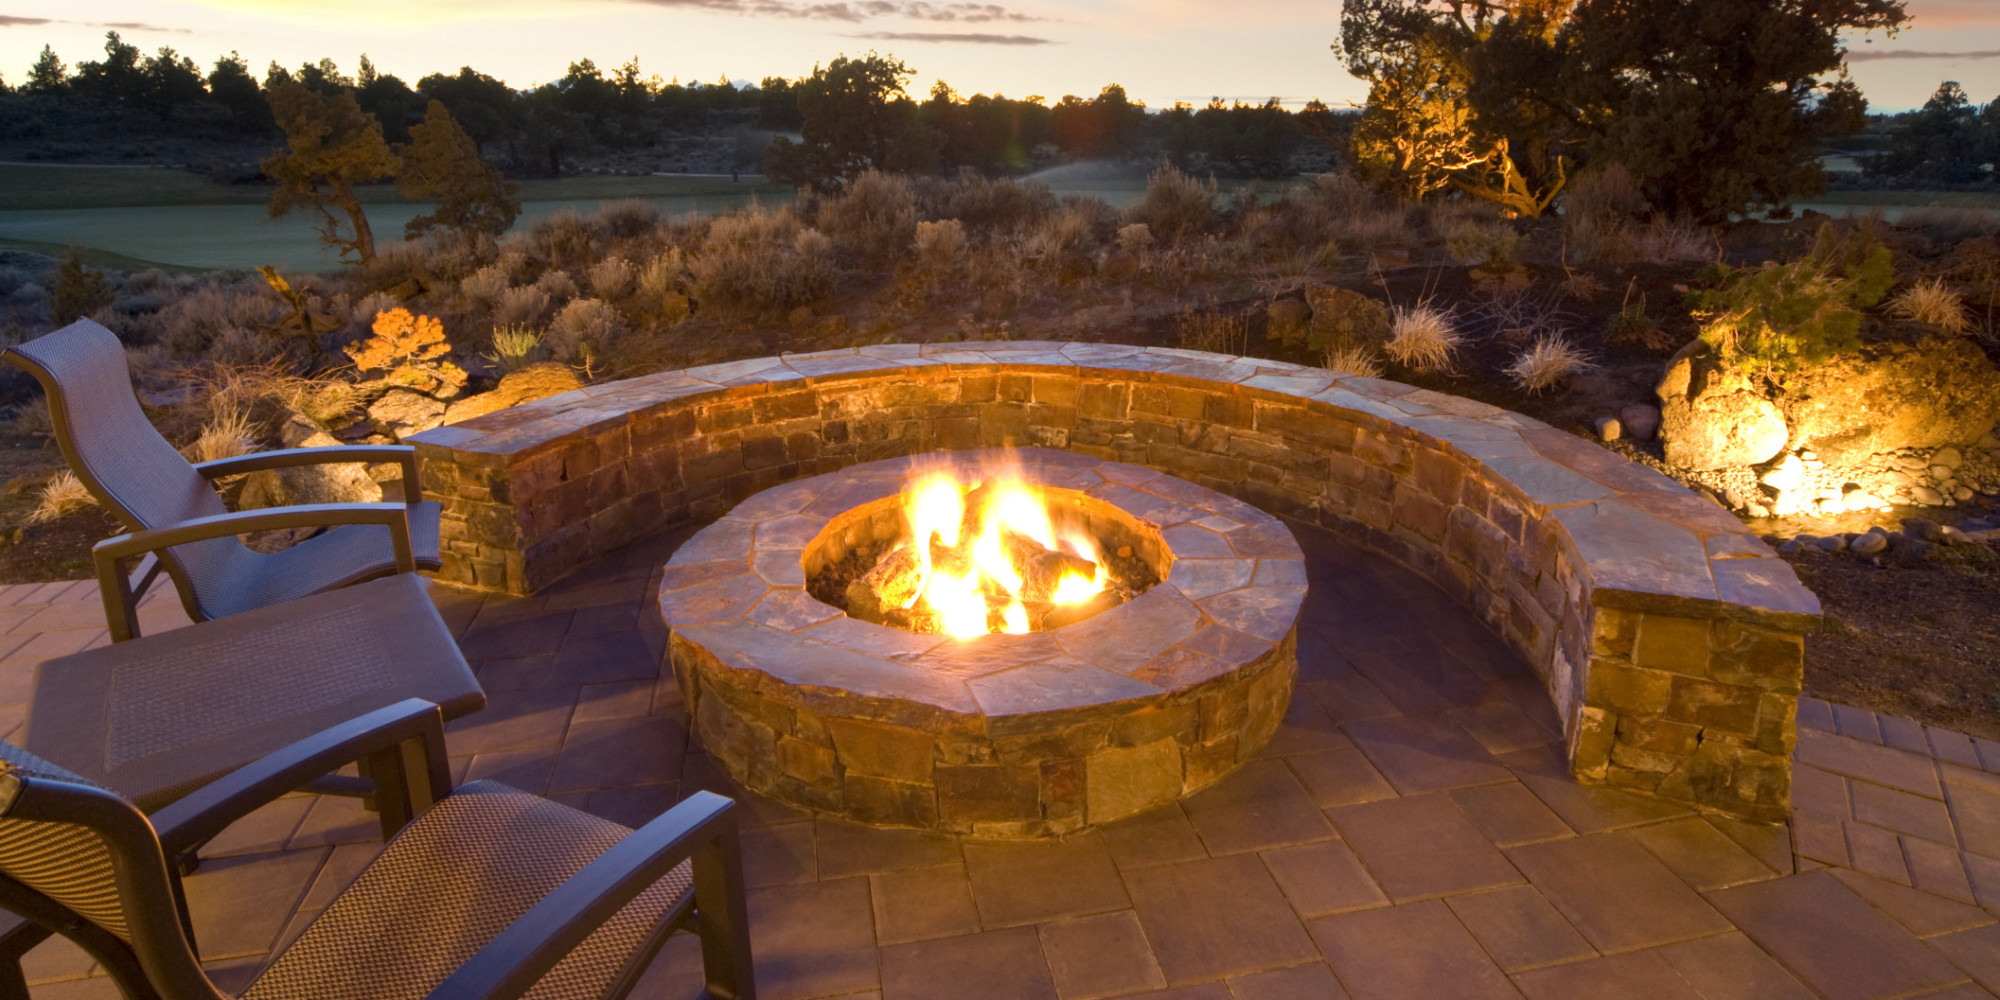 9 ideas that 39 ll convince you to add a fire pit to your backyard huffpost. Black Bedroom Furniture Sets. Home Design Ideas